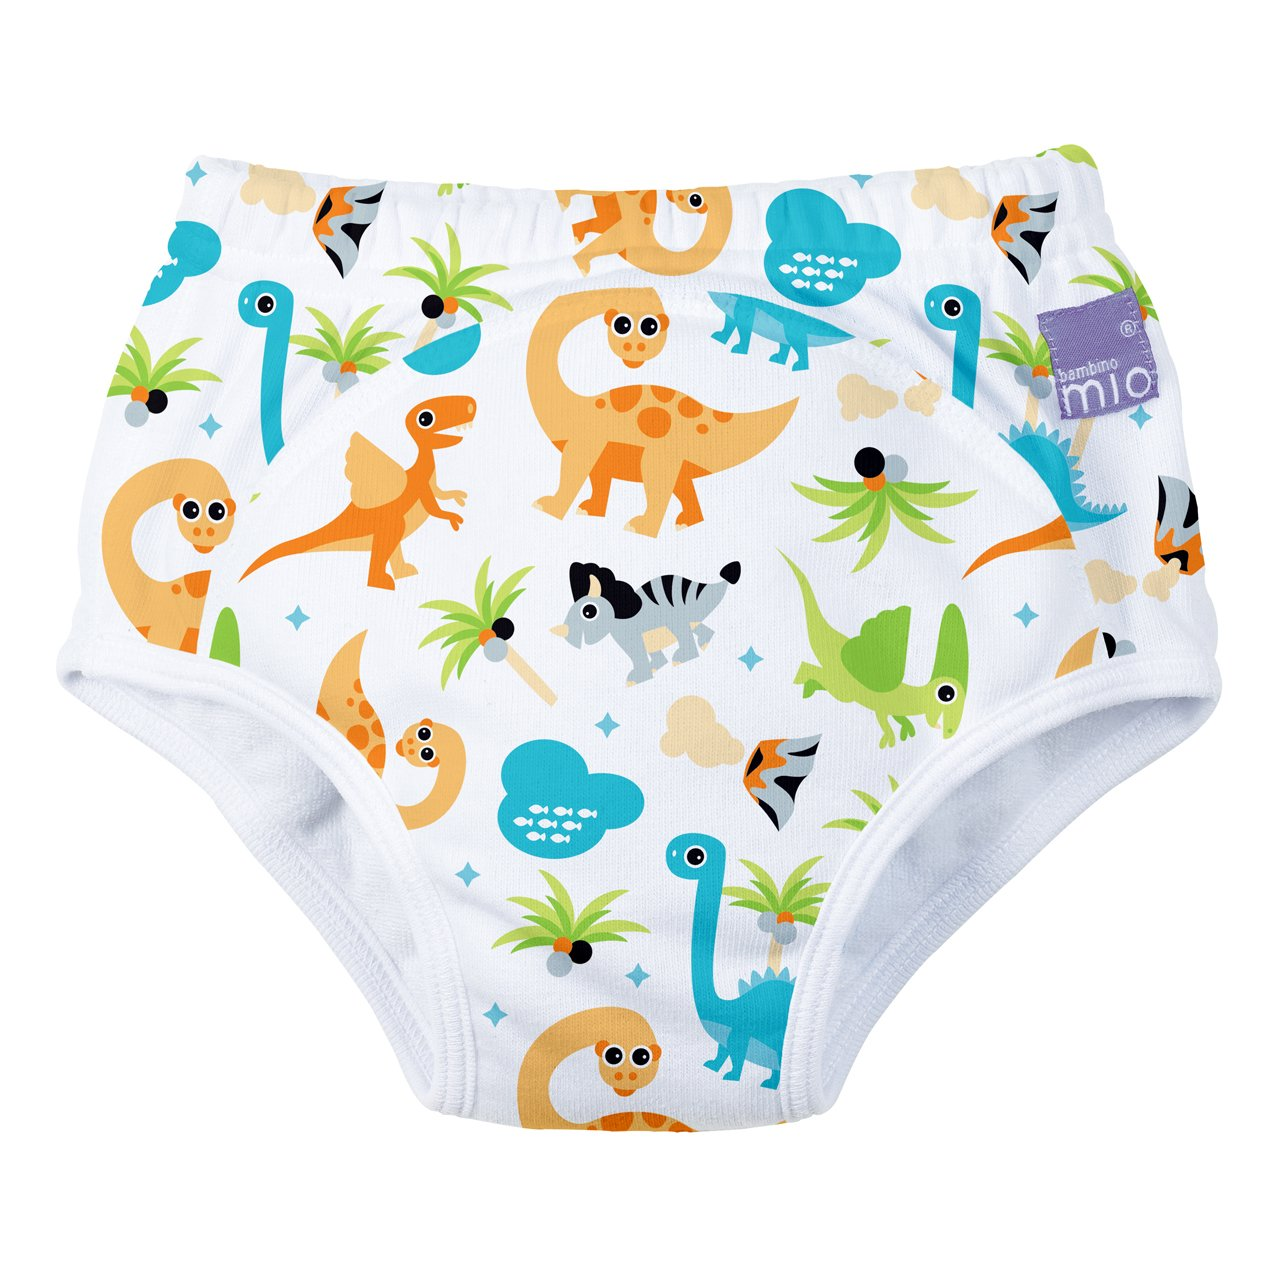 Bambino Mio Potty Training Pants, Dragon's Dungeon, 2-3 Years Dragon's Dungeon Bambino Mio UK TP2-3 DRA